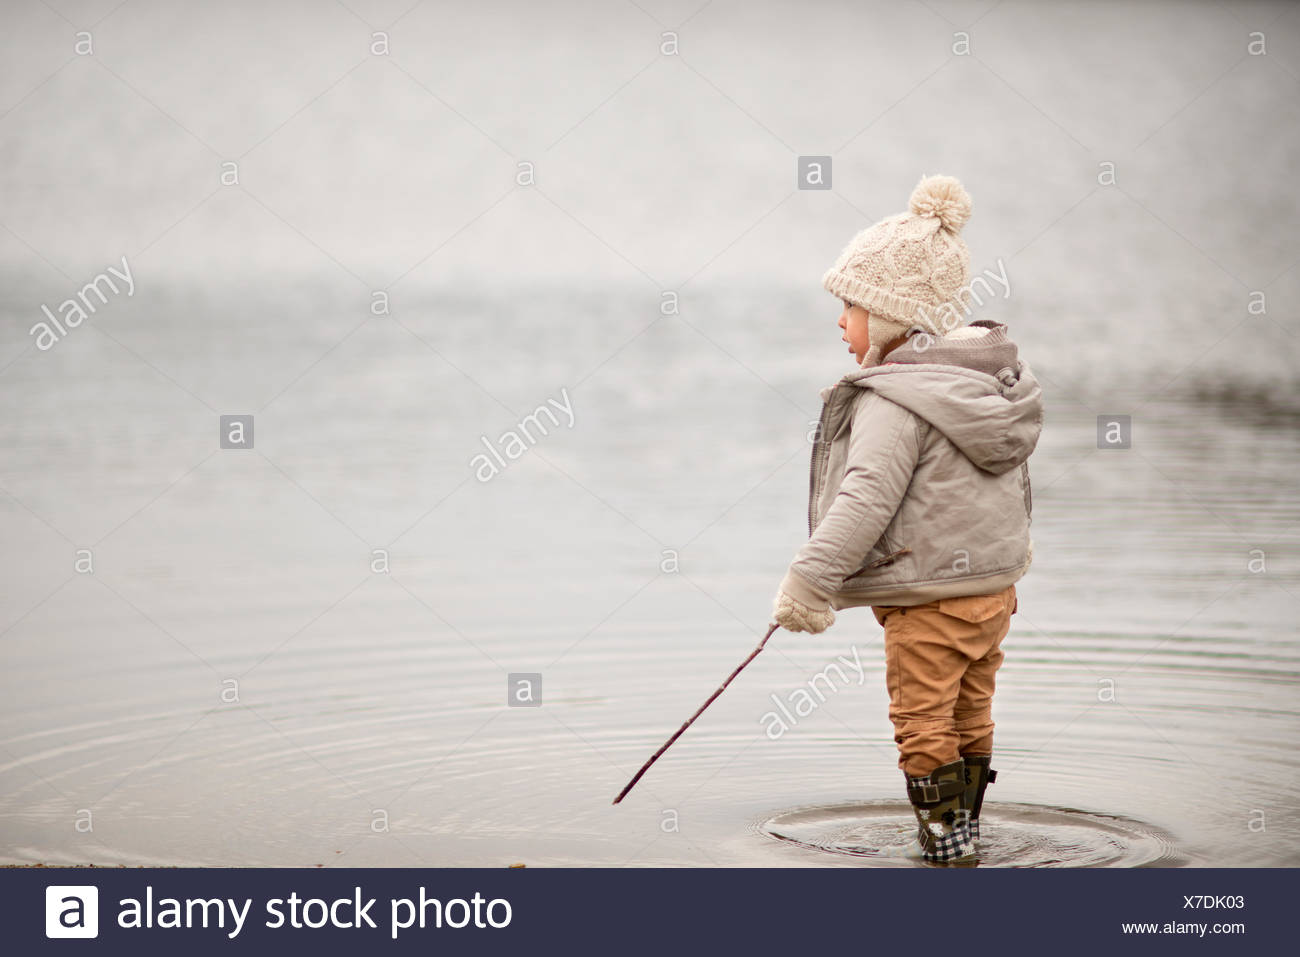 Young boy standing in a lake, holding a stick - Stock Image